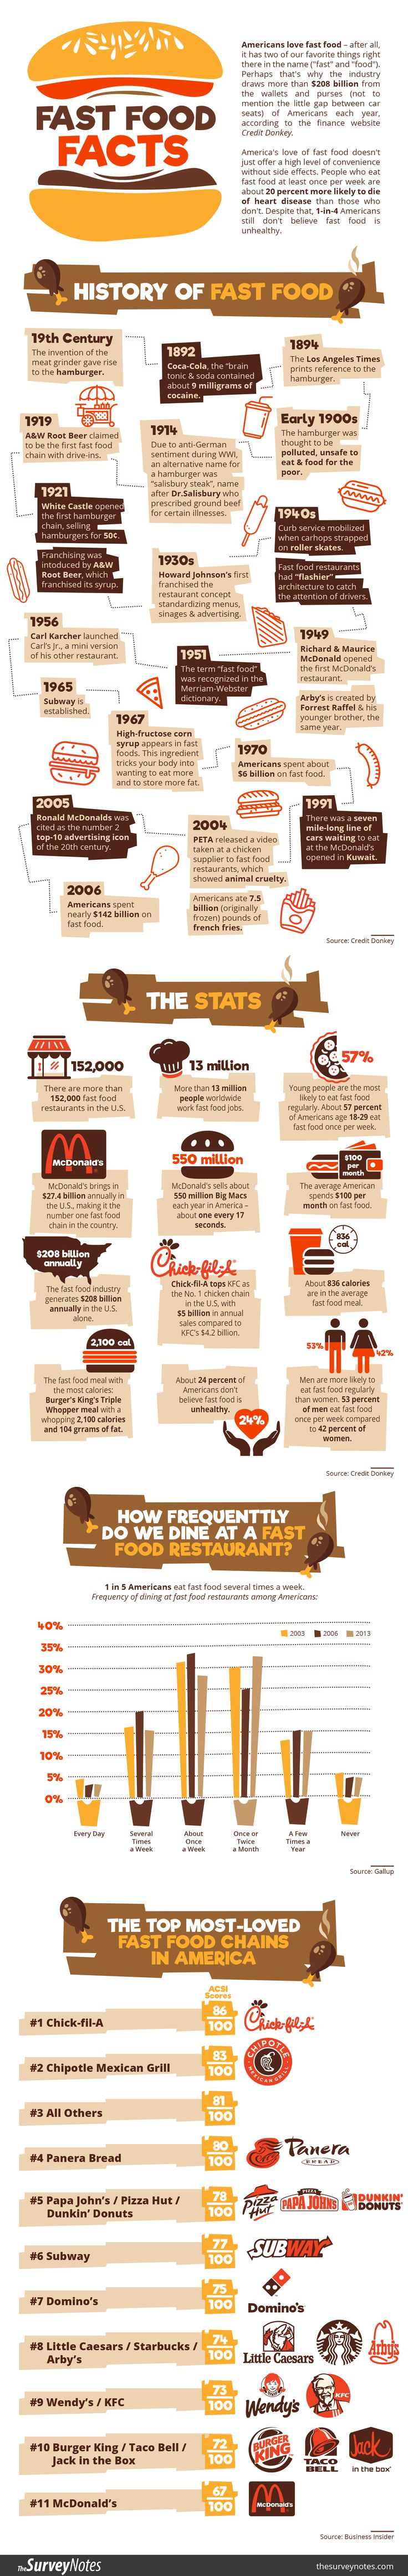 Americans love fast food so much that the majority of them eat it every week, usually from national chains like McDonald's, Chick-Fil-A, or Burger King. While healthier eating options have become more available in recent years from customer feedback and sentiment, a majority of fast food is still very unhealthy. The following fast food illustration from customer data site TheSurveyNotes.com shares how the history of fast food has shaped the industry that it is today as well as consumers…